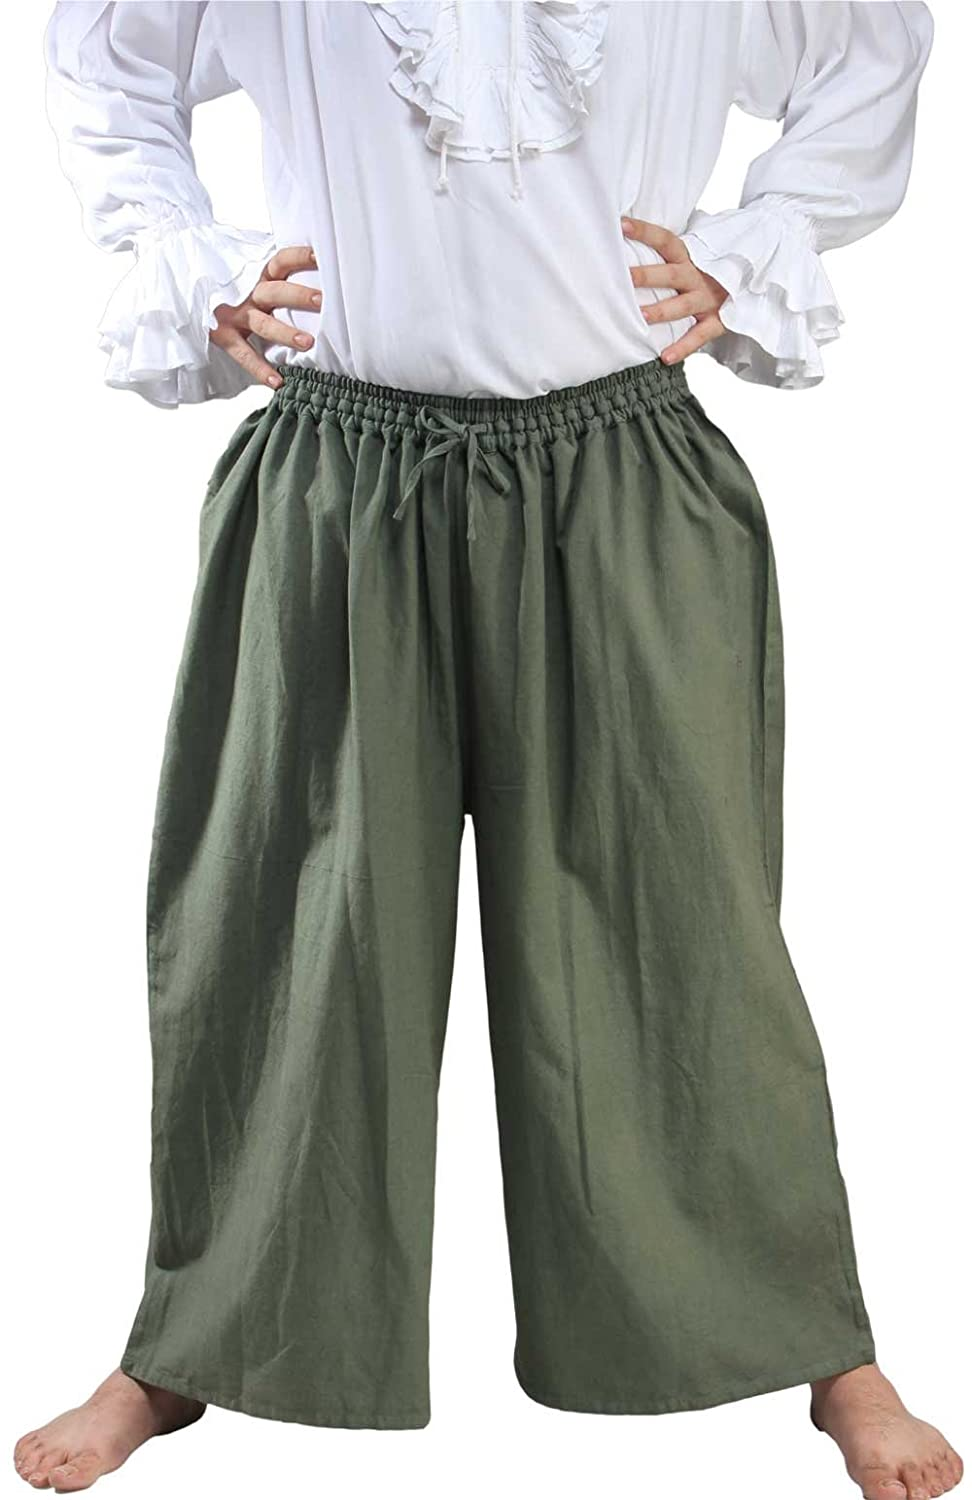 Deluxe Adult Costumes - Men's khaki wide leg draw string pirate sailor slop pants by ThePirateDressing